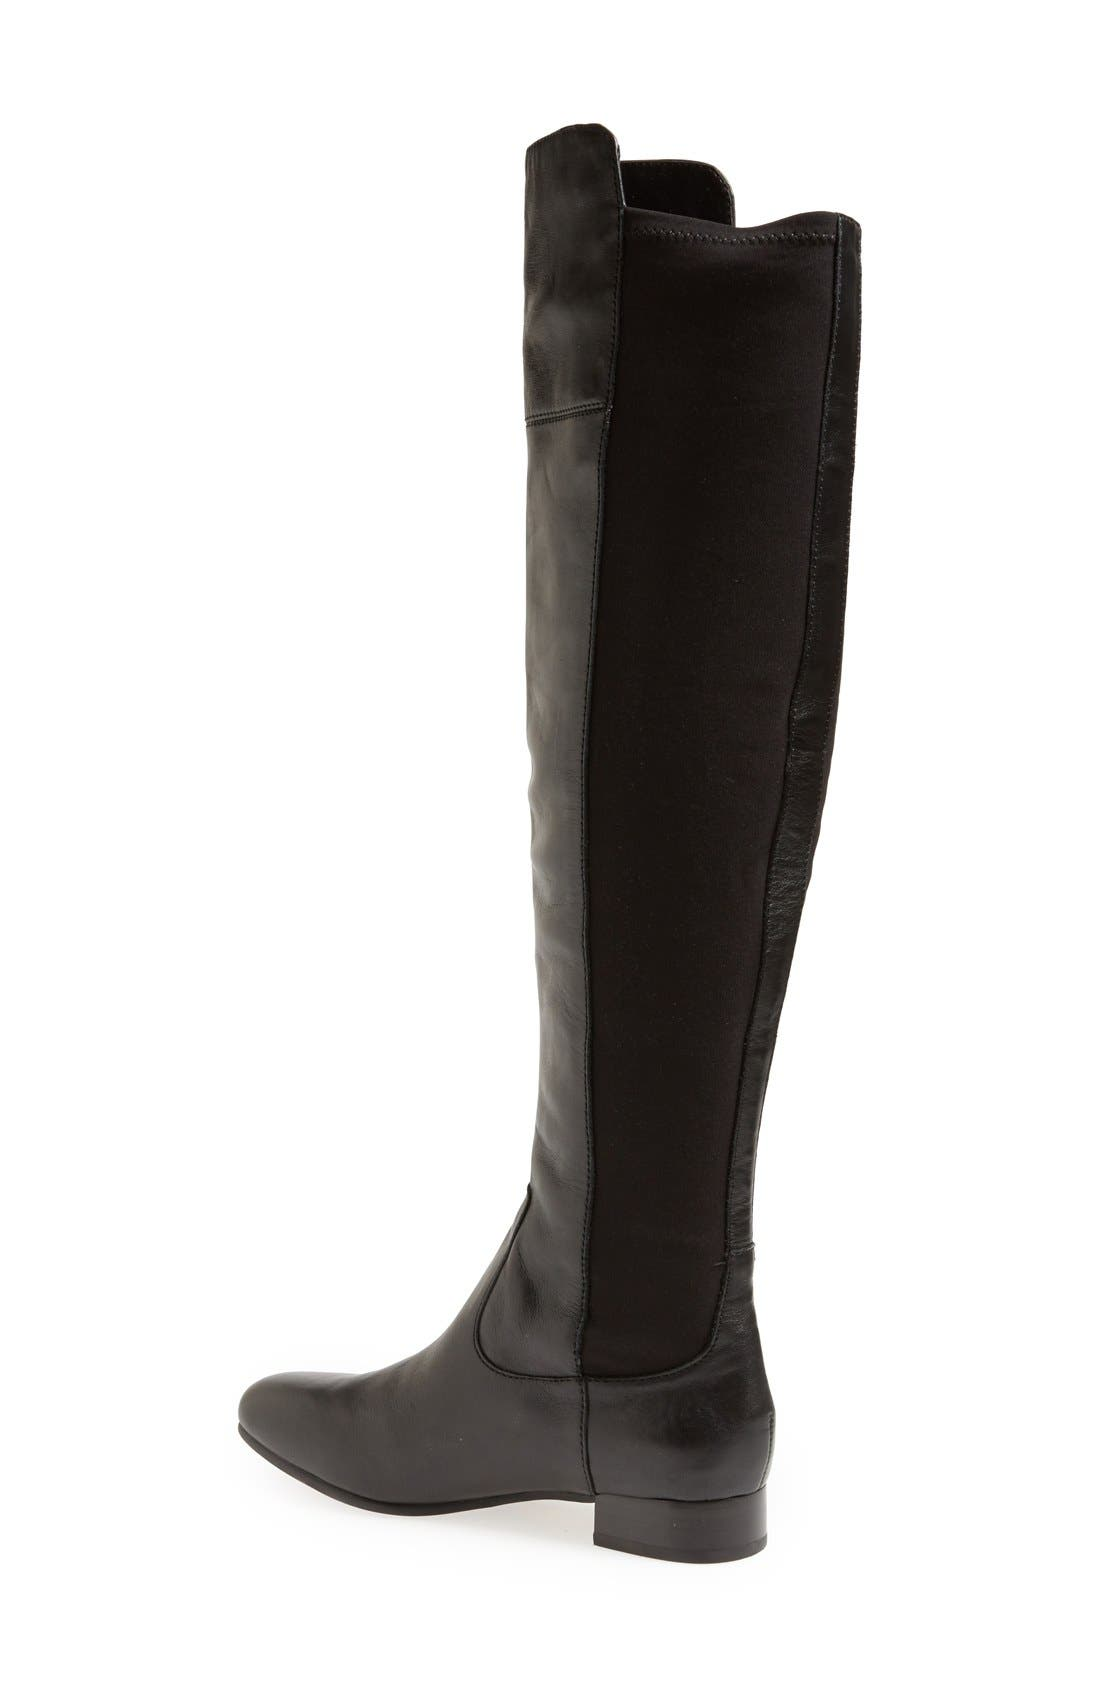 LOUISE ET CIE,                             'Andora' Over the Knee Boot,                             Alternate thumbnail 4, color,                             002